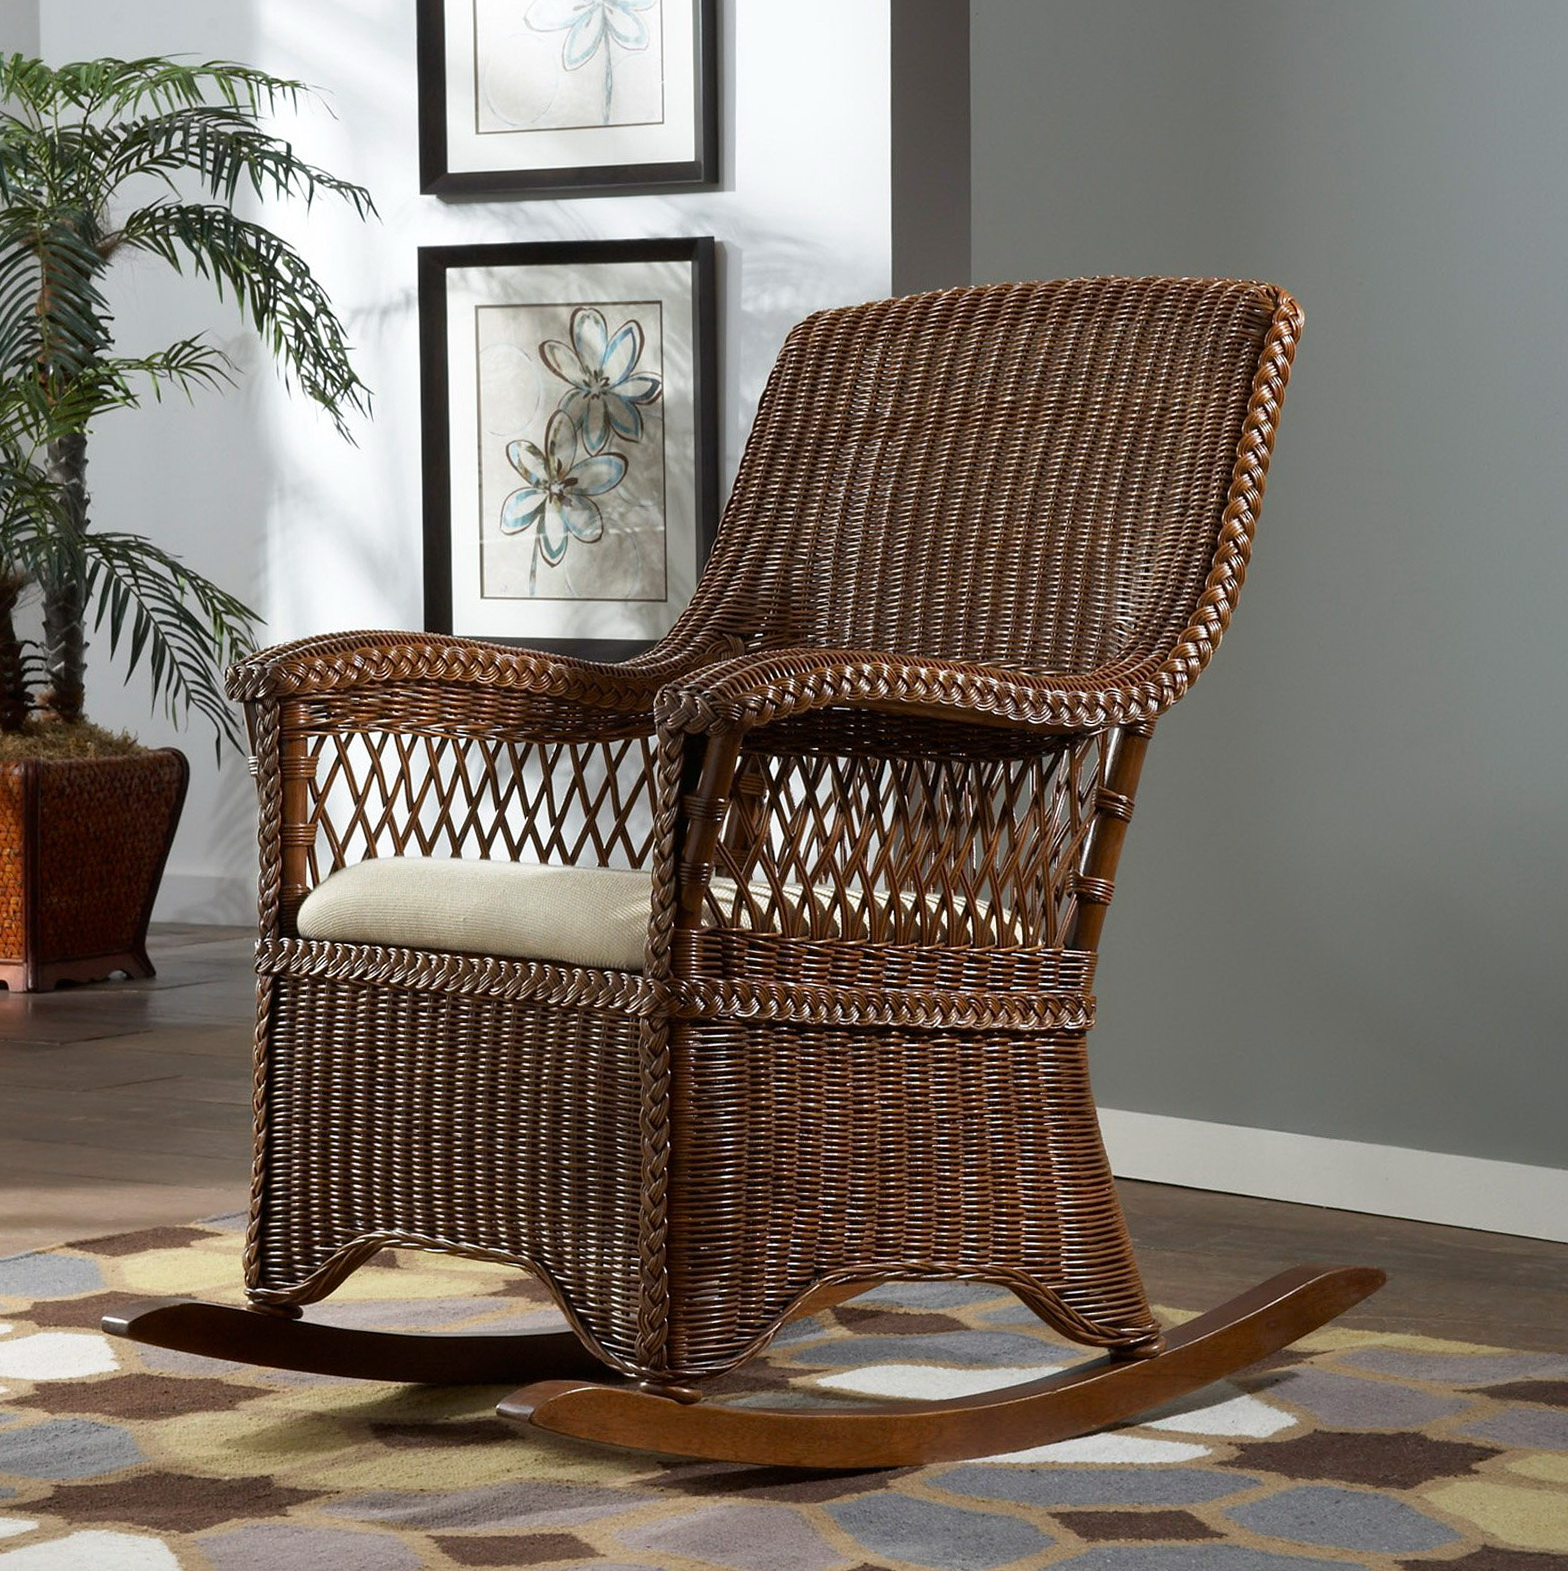 Wicker Furniture Cushions Sets